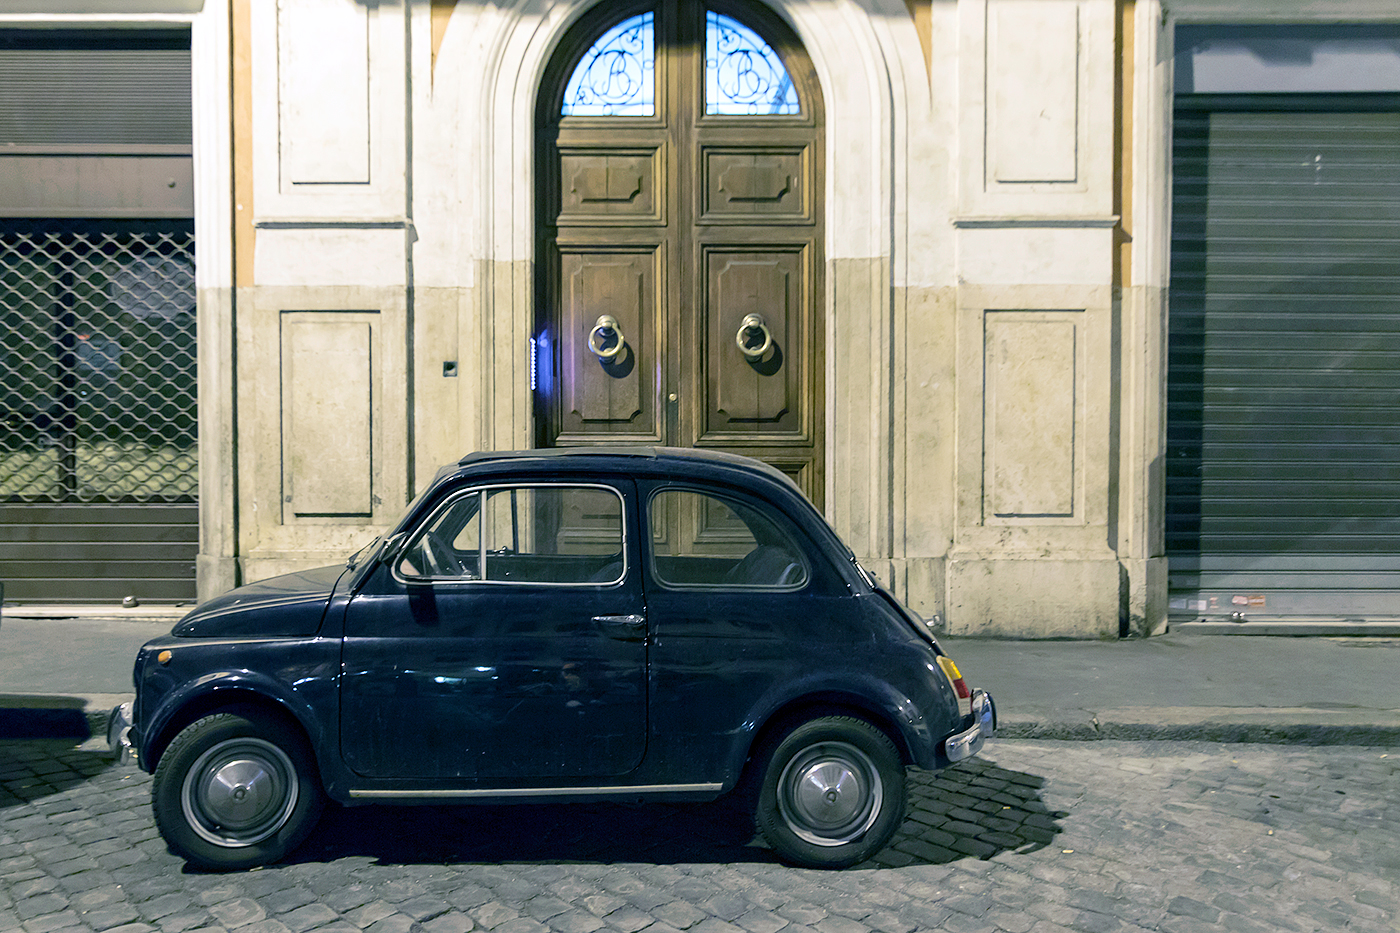 Fiat in Rome, Italy. Photo: Marlon I. Torres